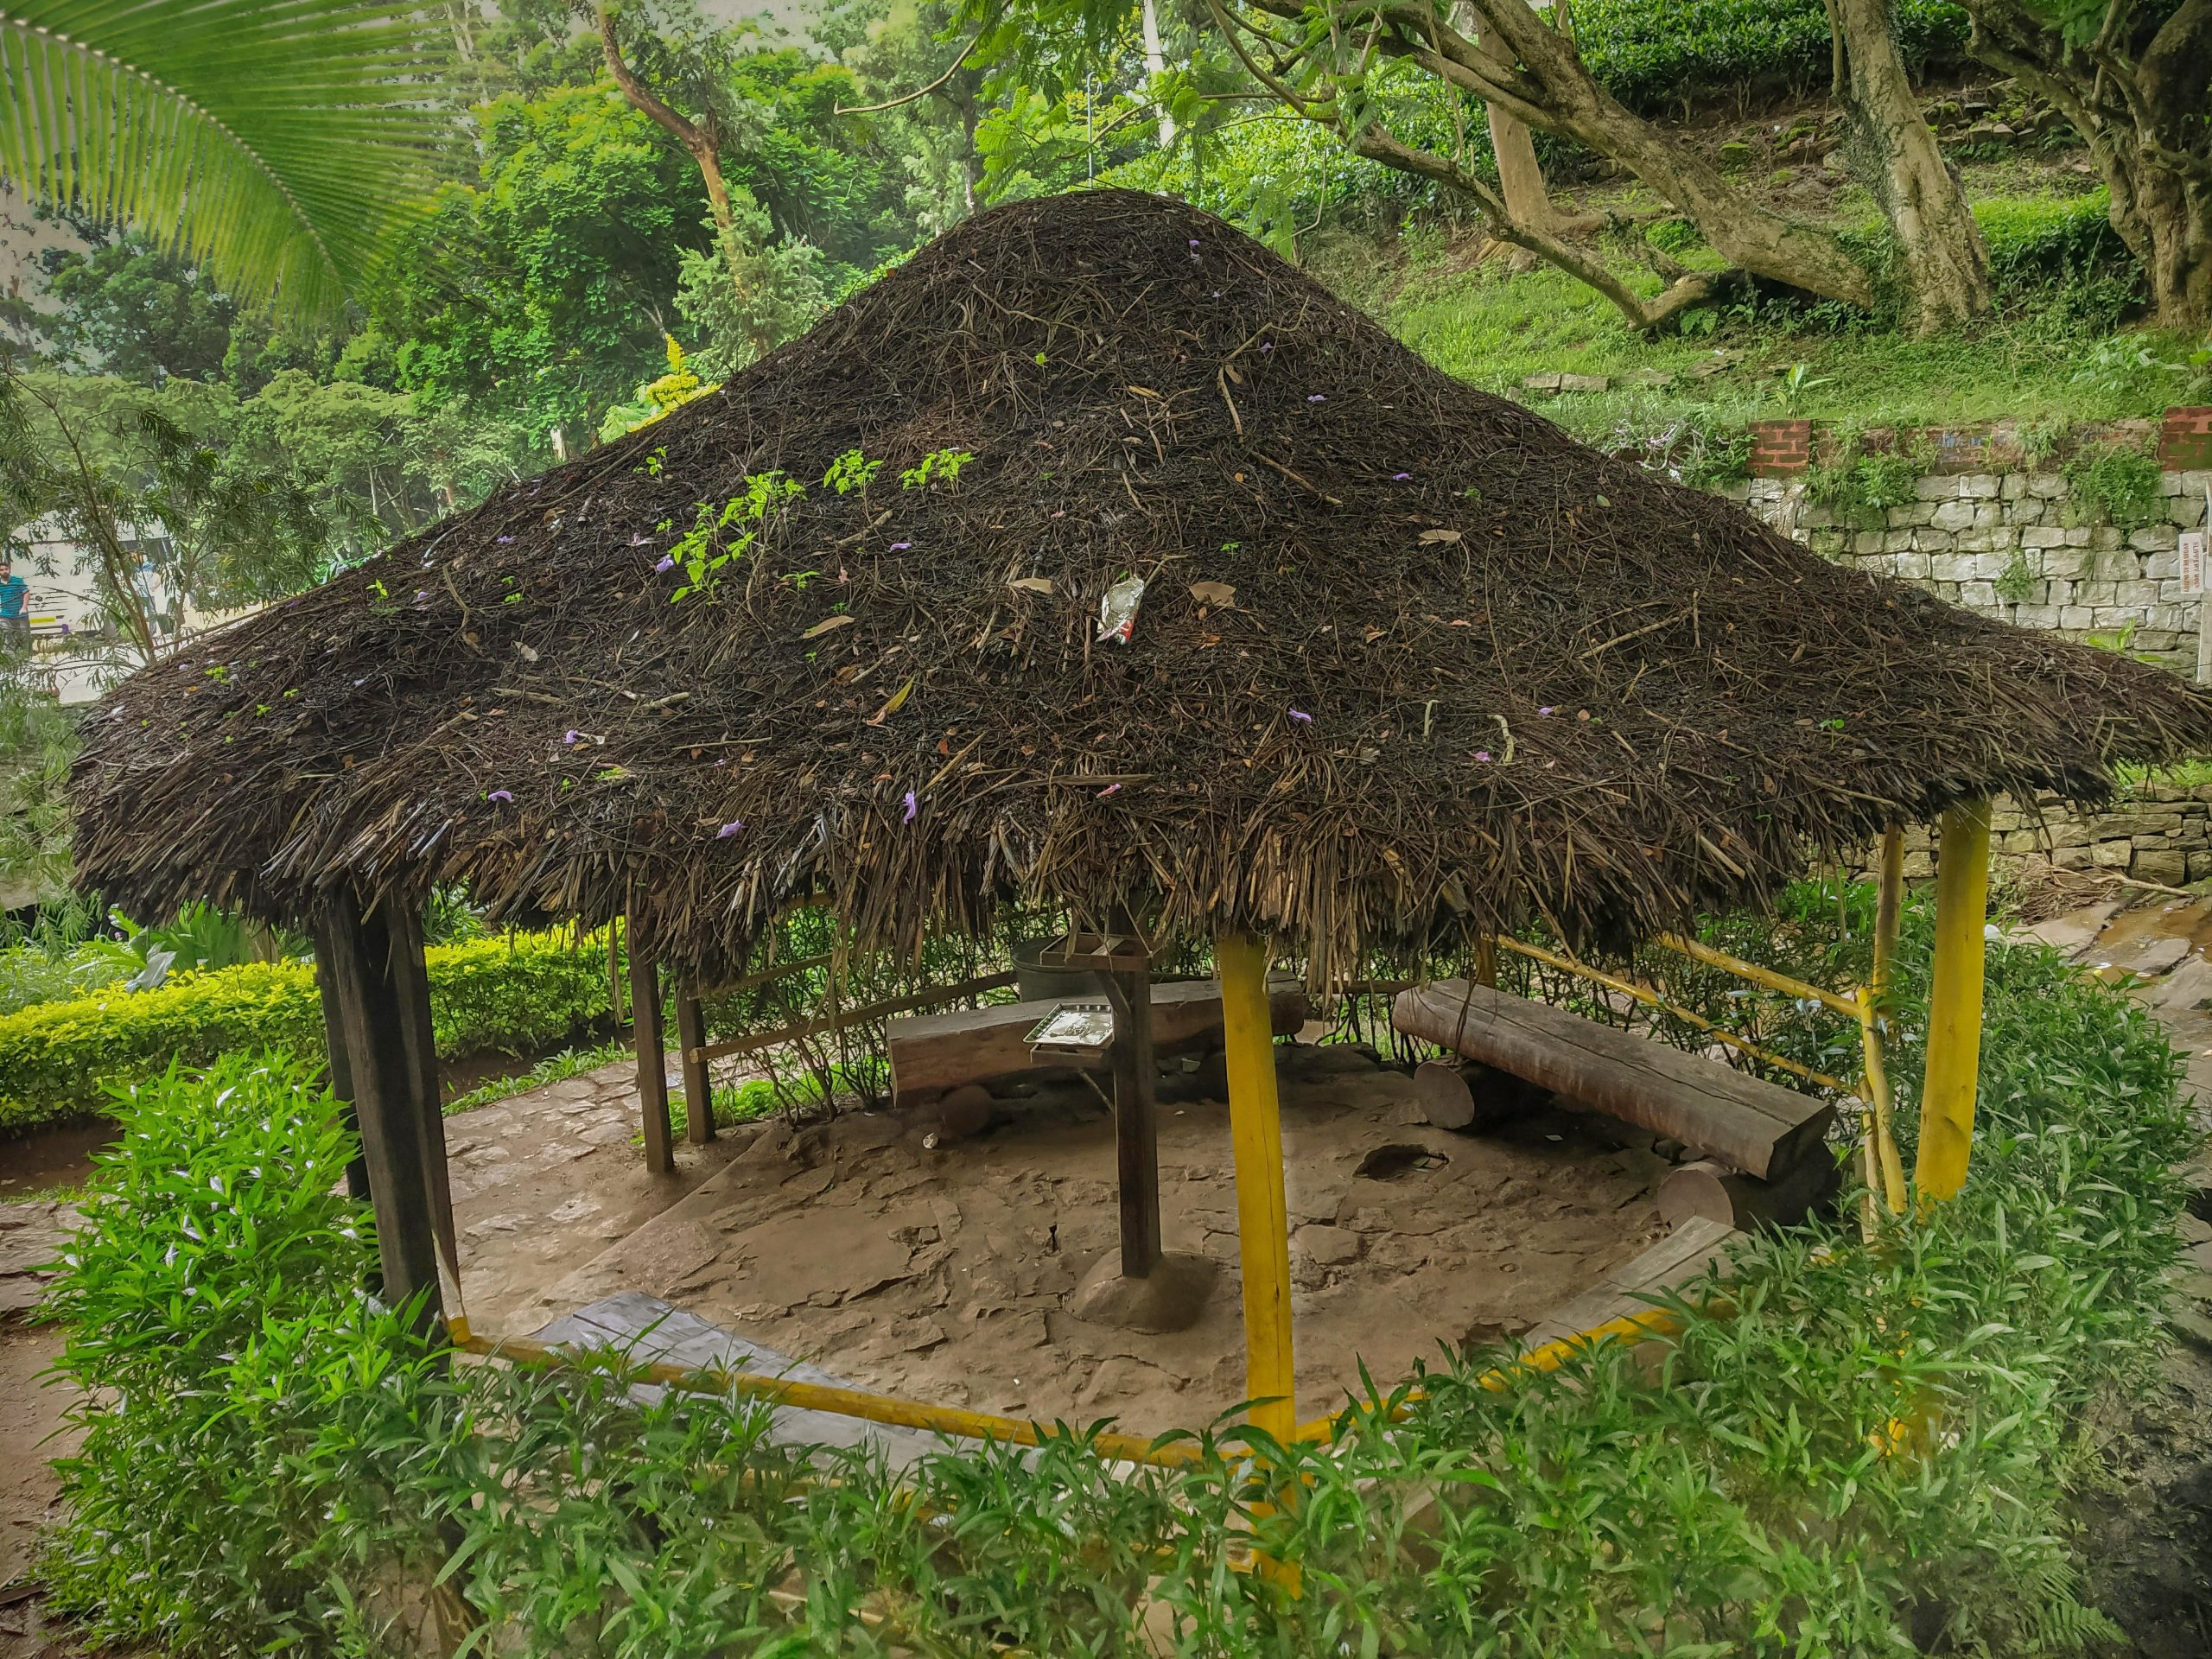 A Thatching Hut in The Forest